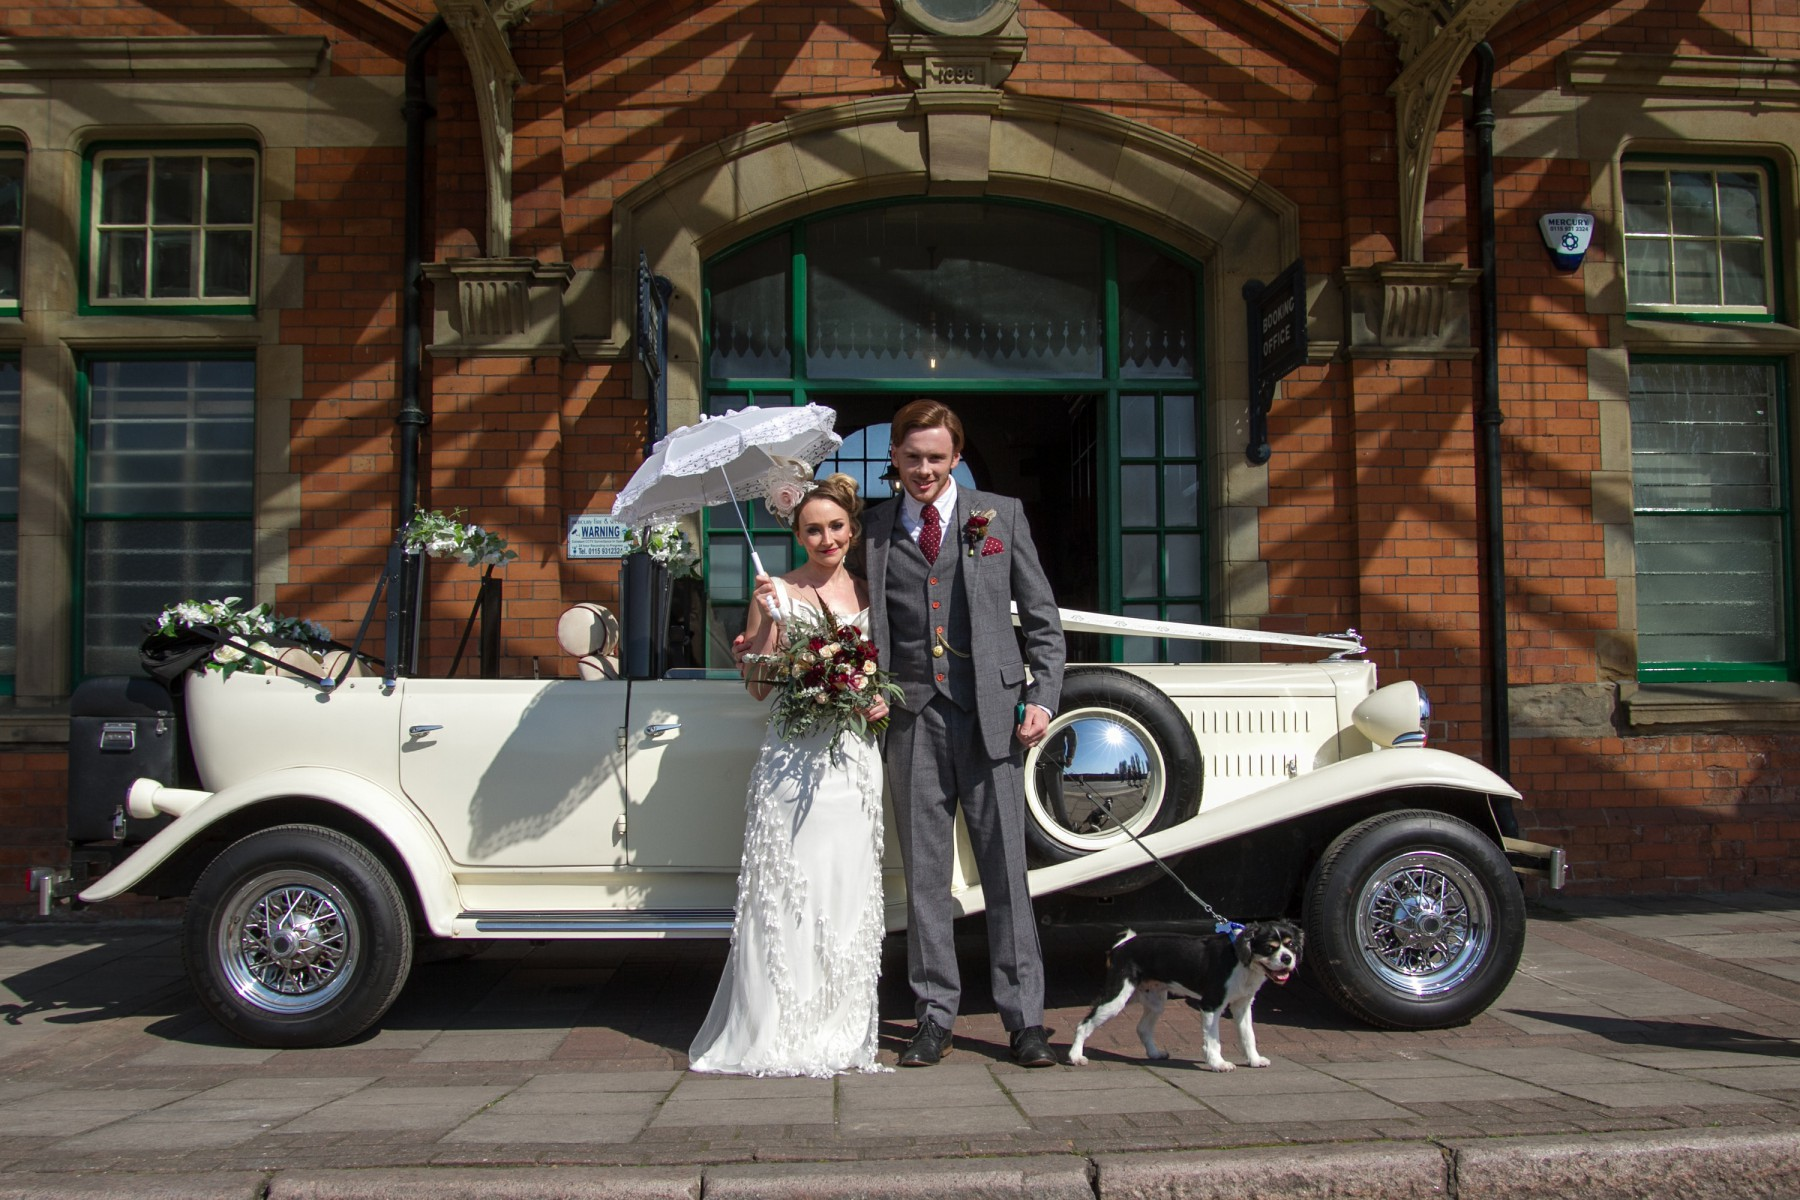 Iso Elegant Photography - Leicester wedding network - Railway wedding - vintage wedding 40